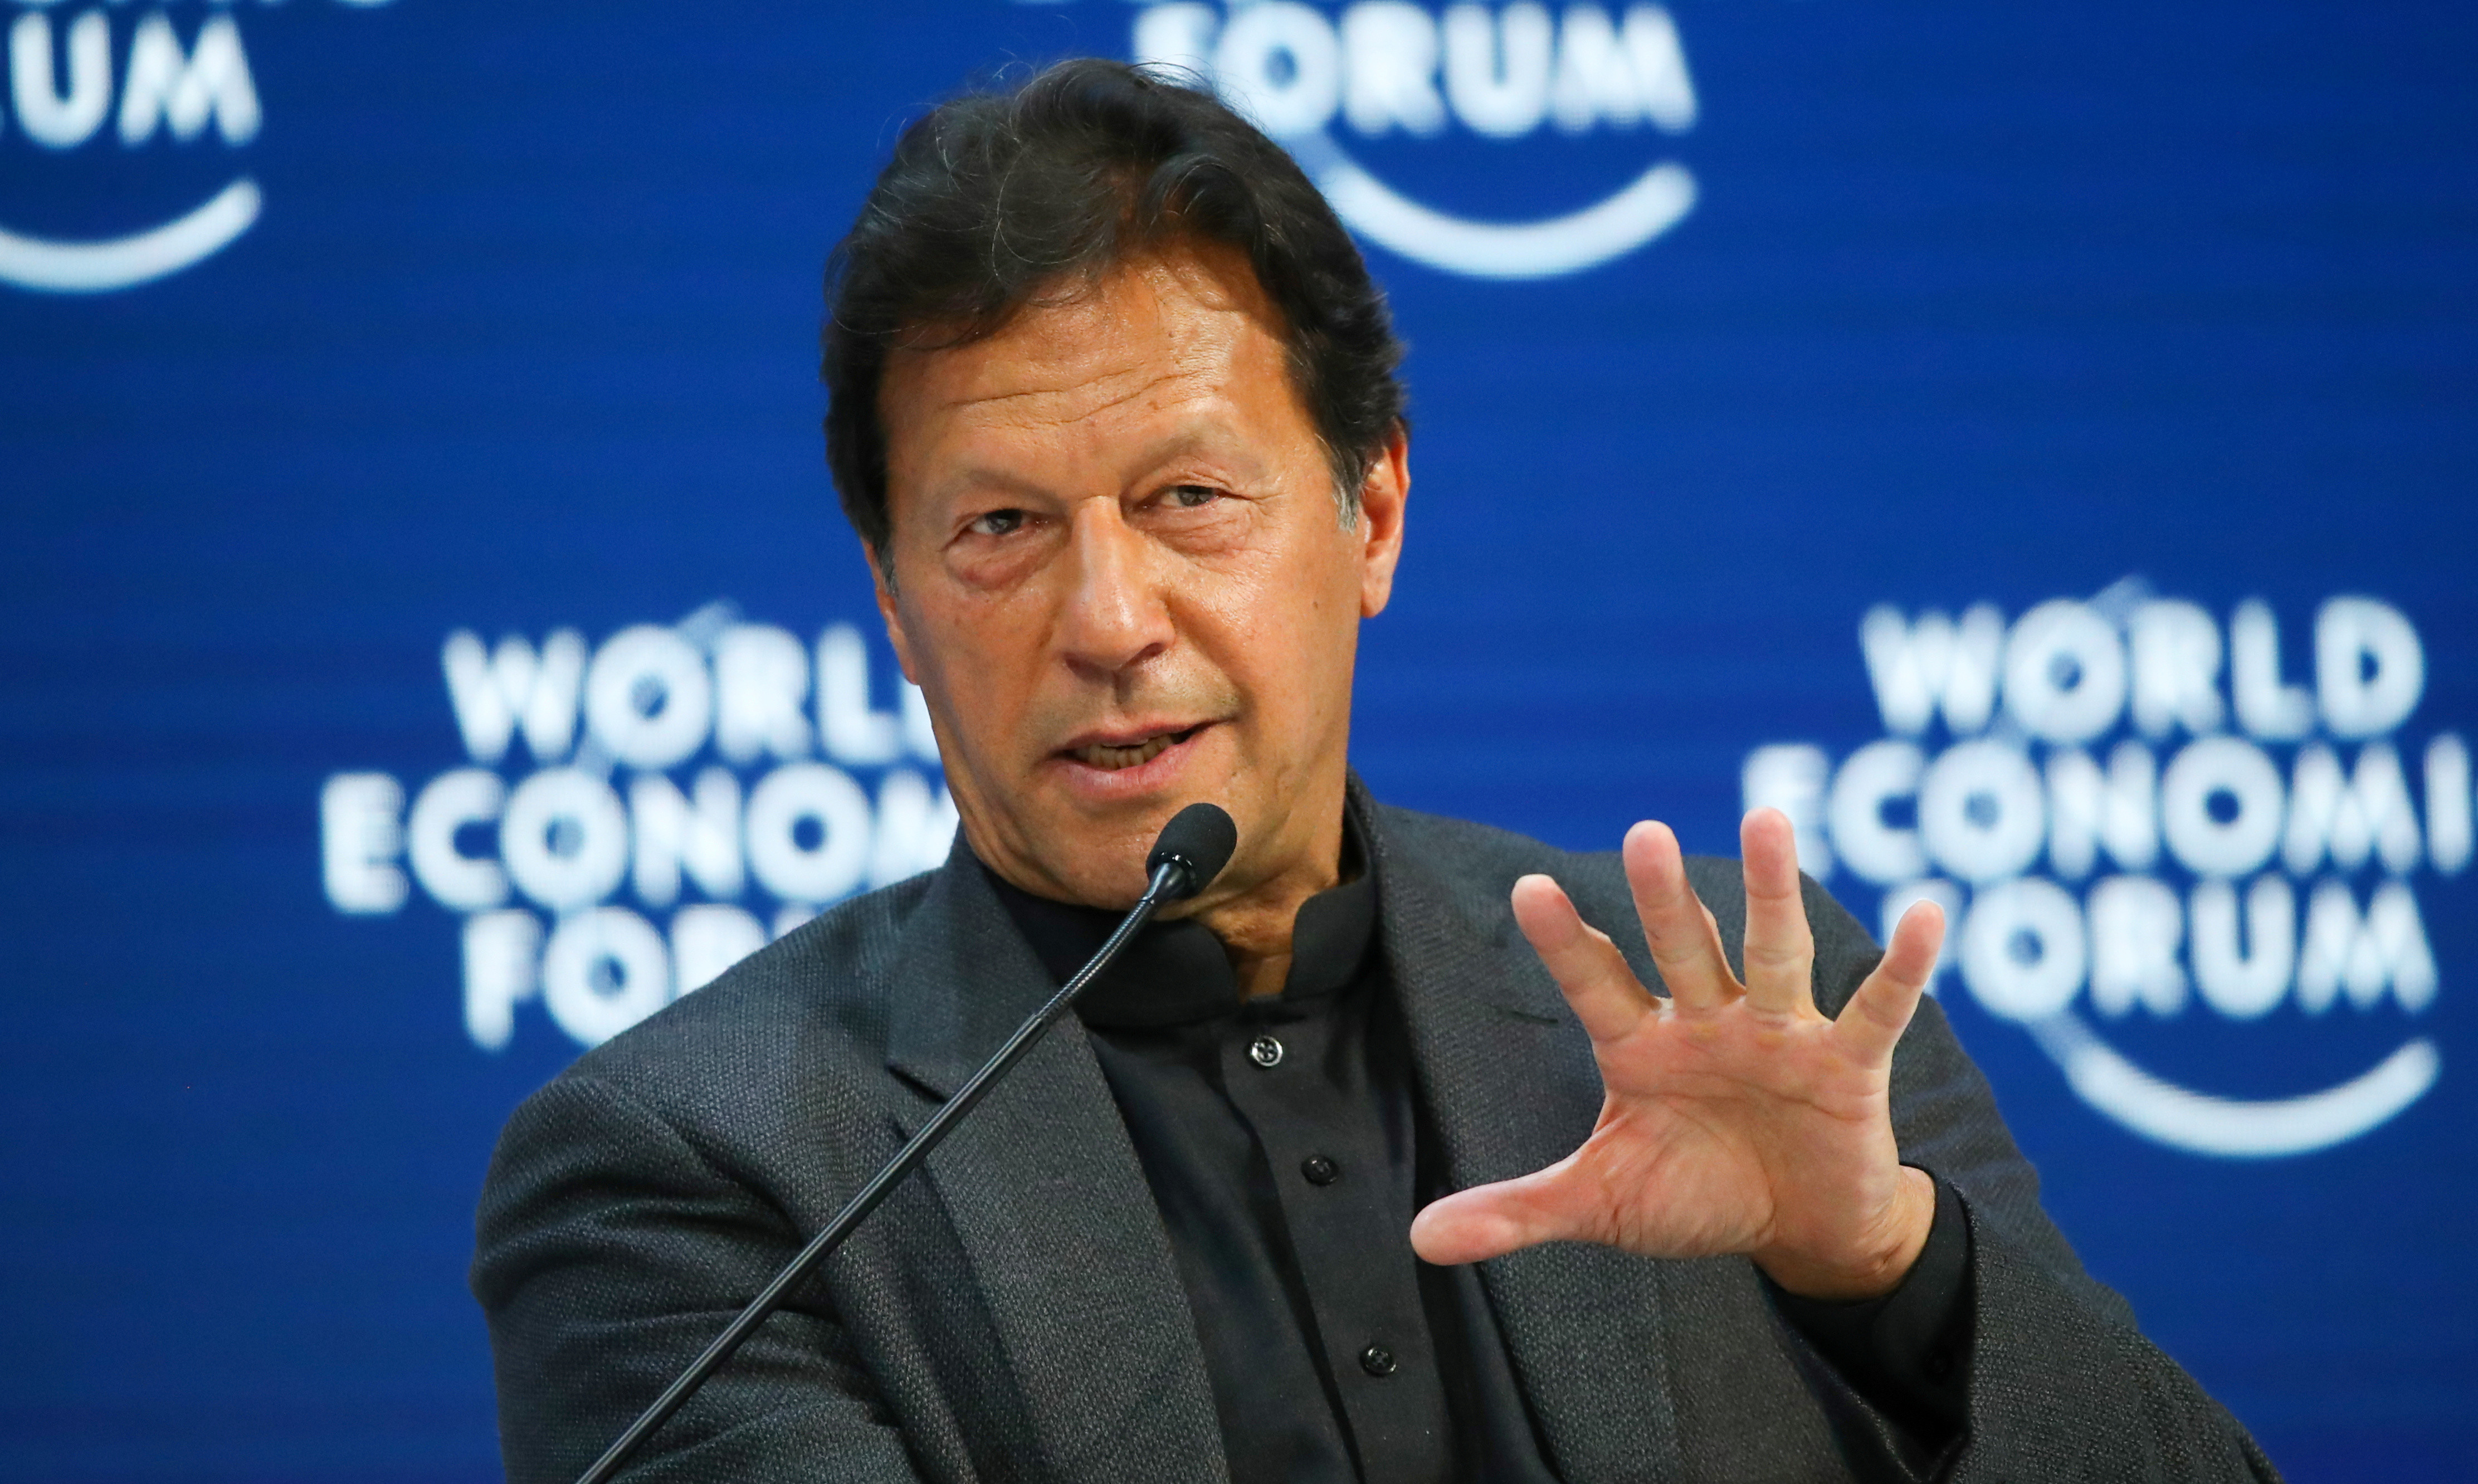 Pakistan's Prime Minister Imran Khan speaks during a session at the 50th World Economic Forum (WEF) in Davos, Switzerland, January 22, 2020.